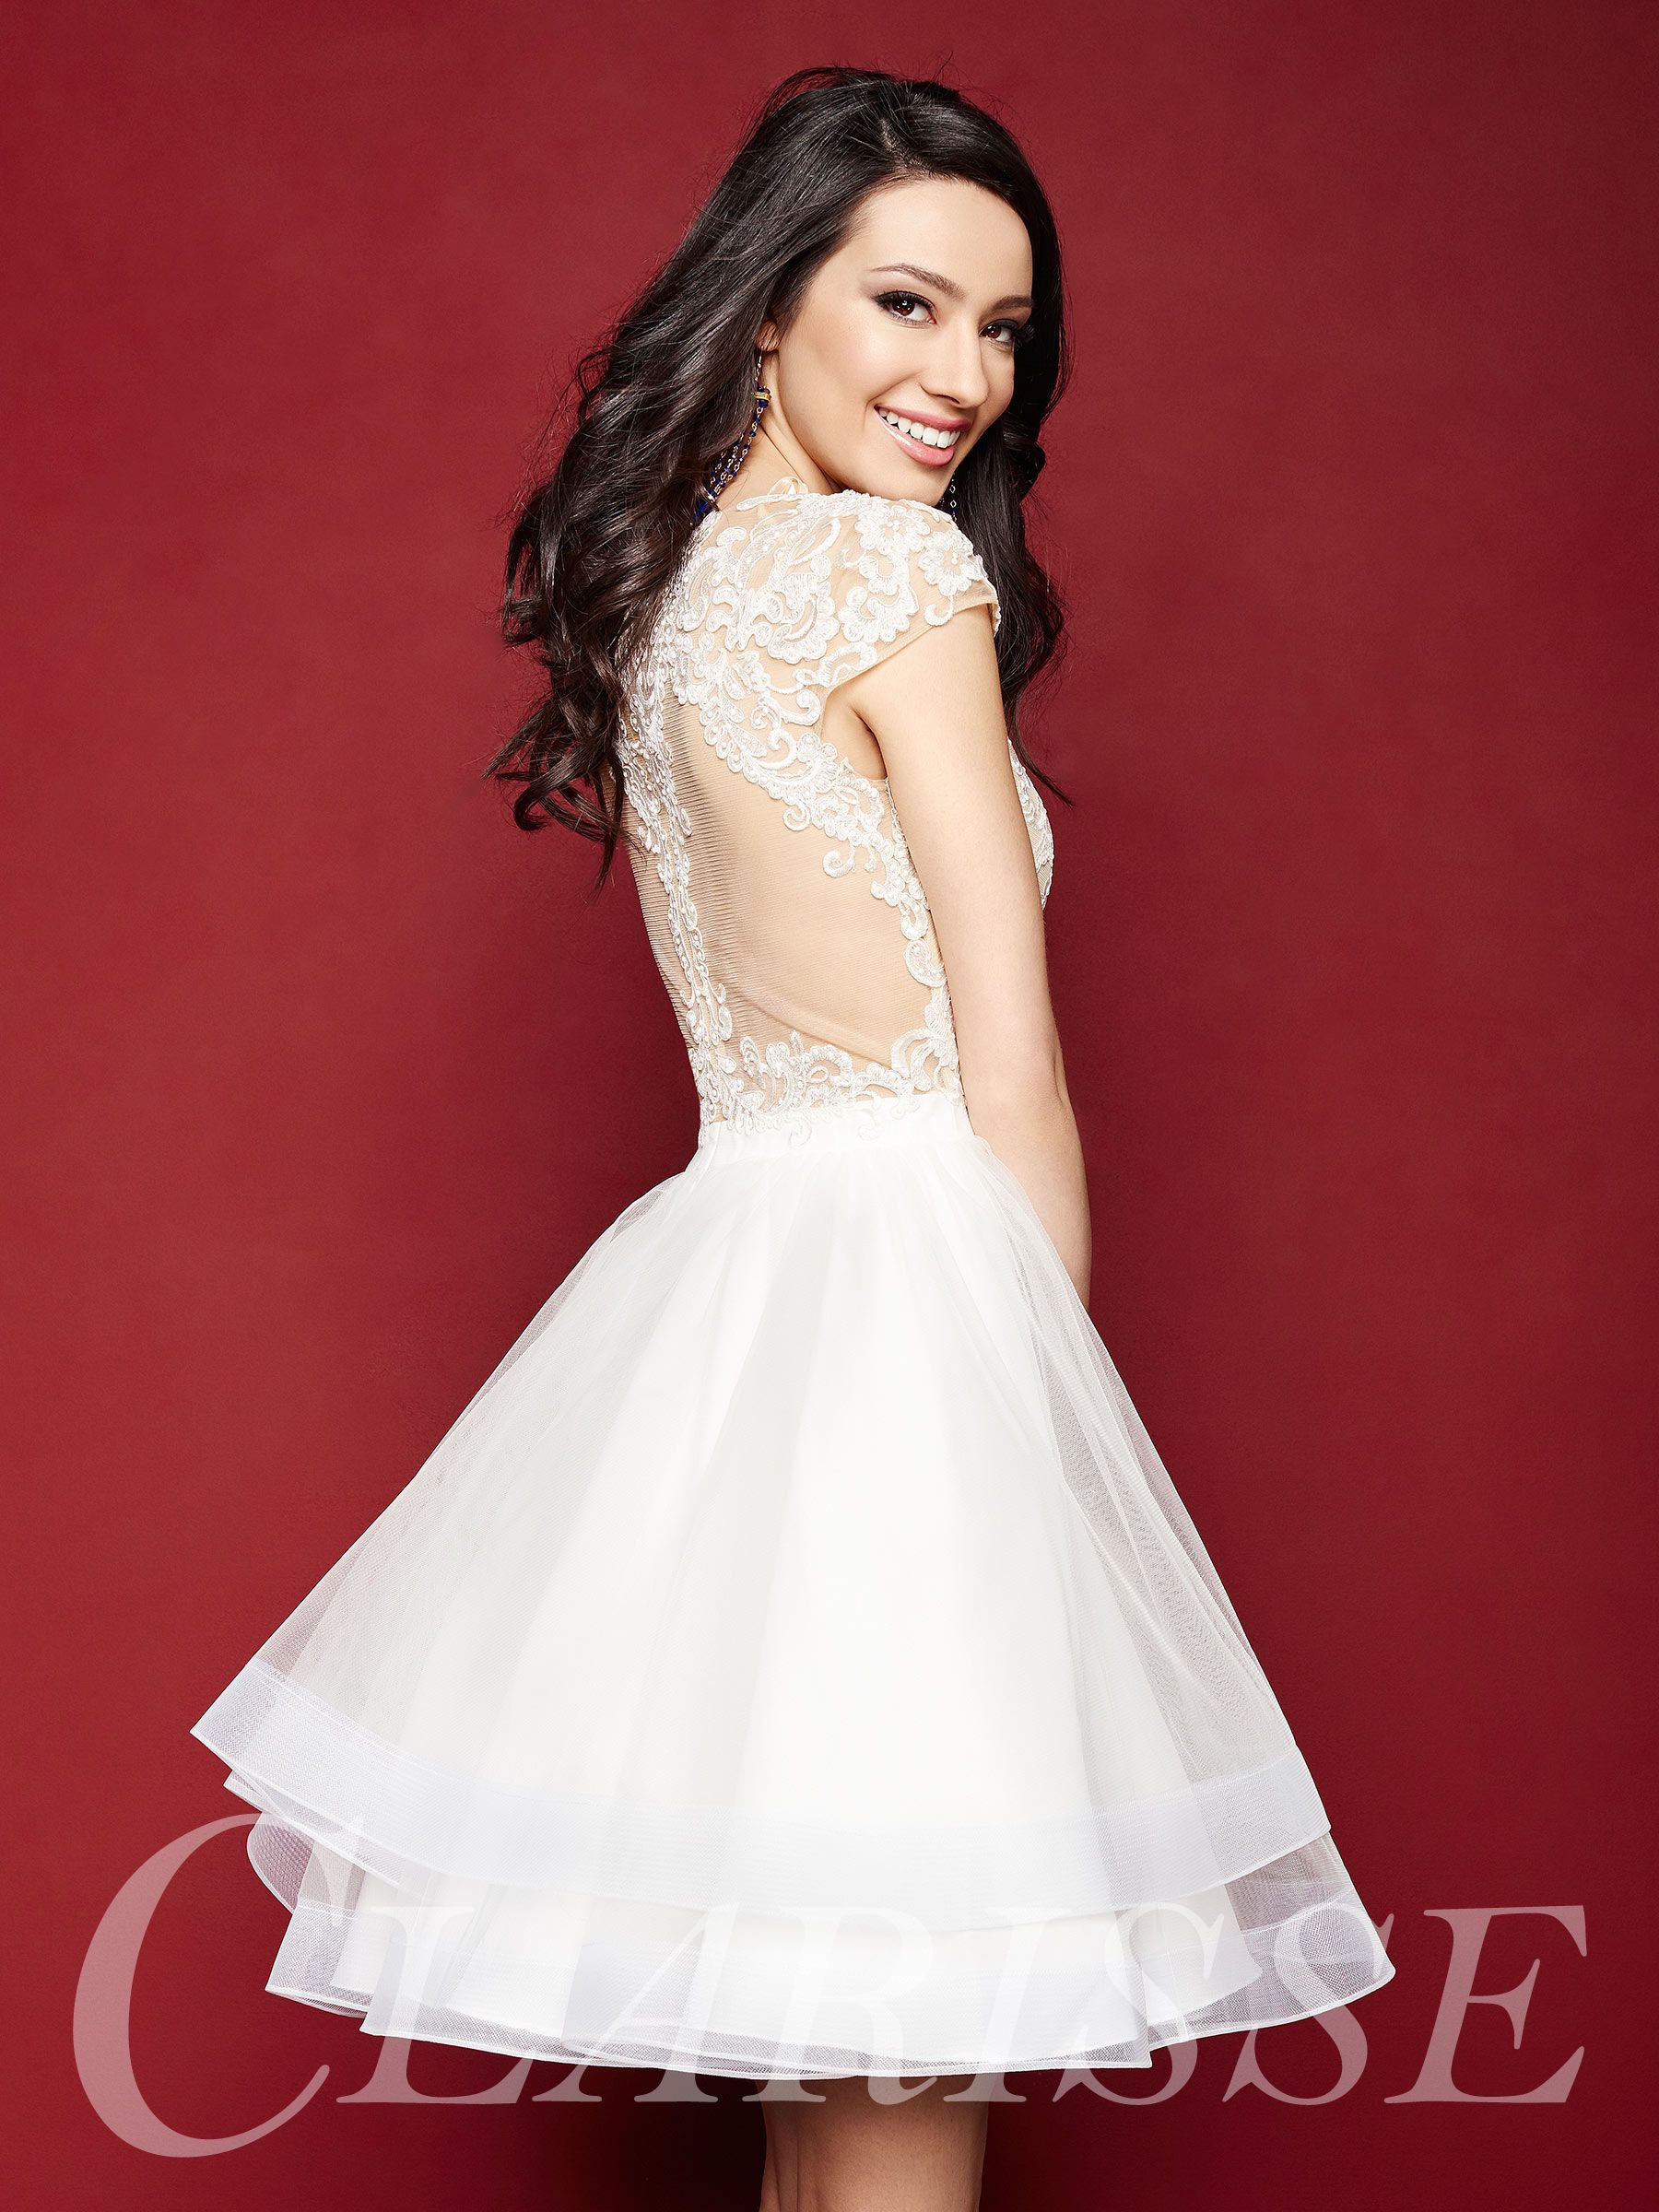 Look Sweet And Darling In This Tulle Hoco Dress 3362 By Clarisse Short Cap Sleeve D White Pageant Dresses Homecoming Formal Dresses Rehearsal Dinner Dresses [ 2400 x 1800 Pixel ]